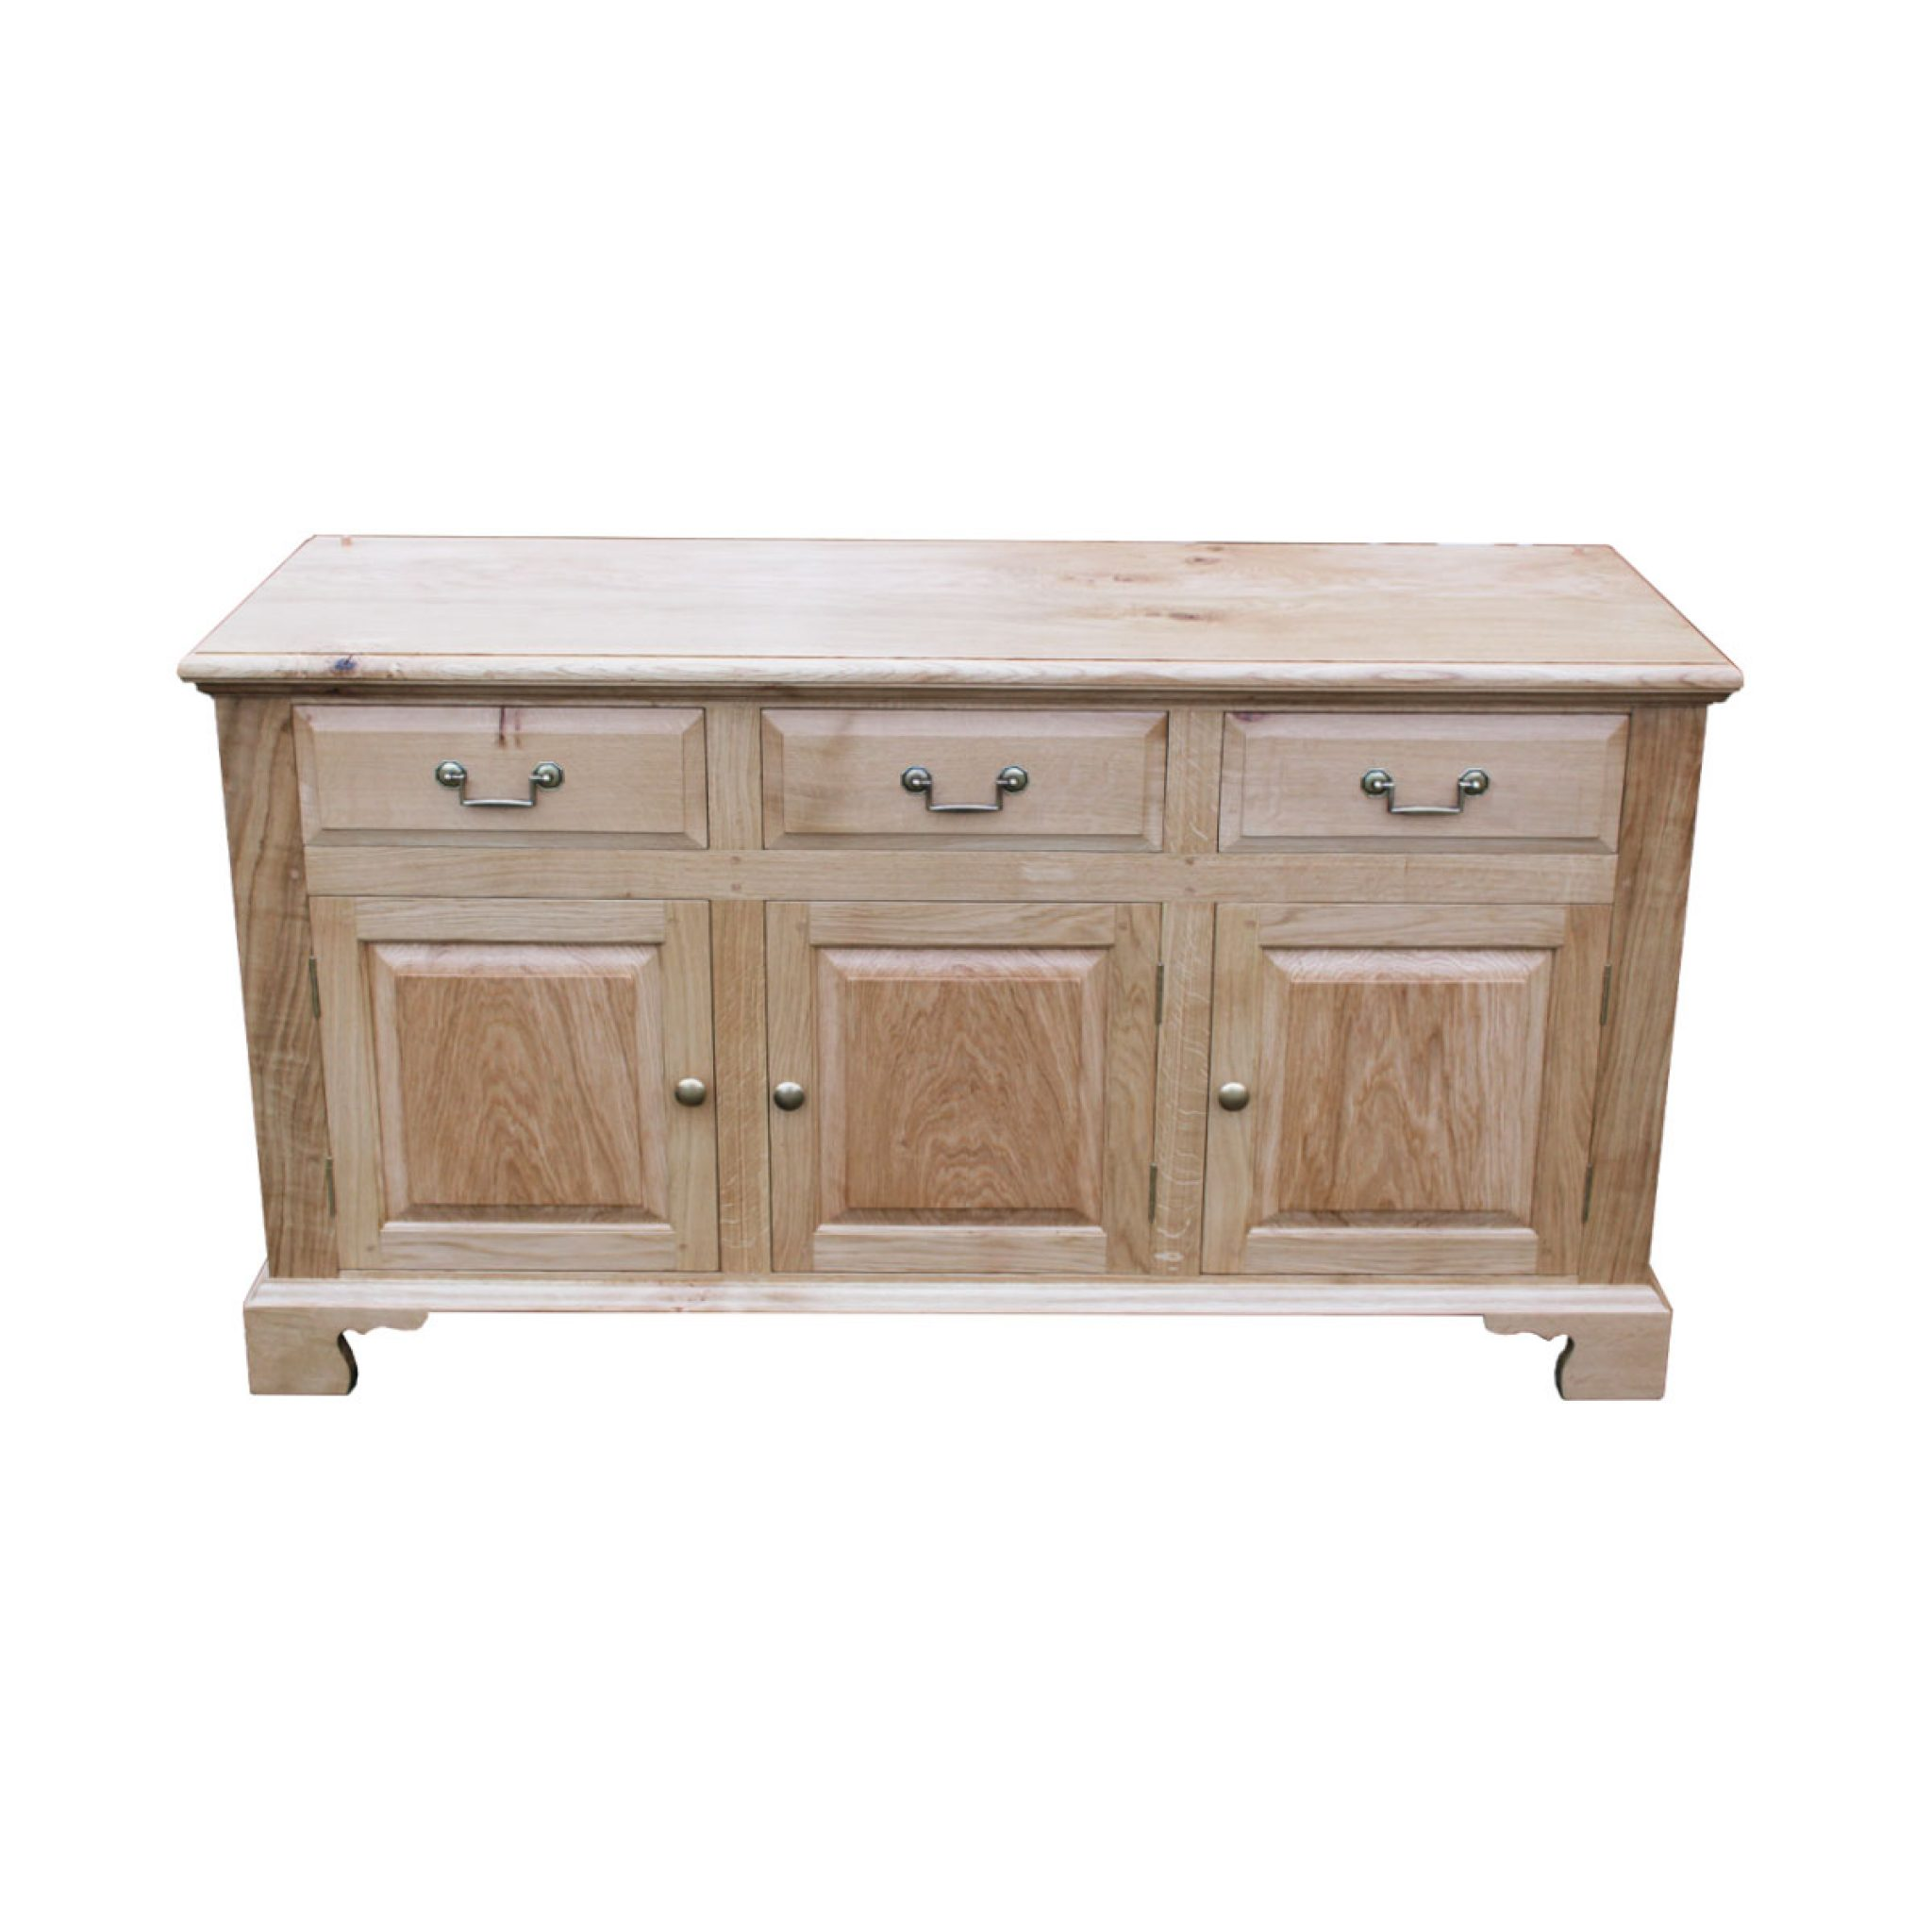 Handmade Oak Furniture Kemnay